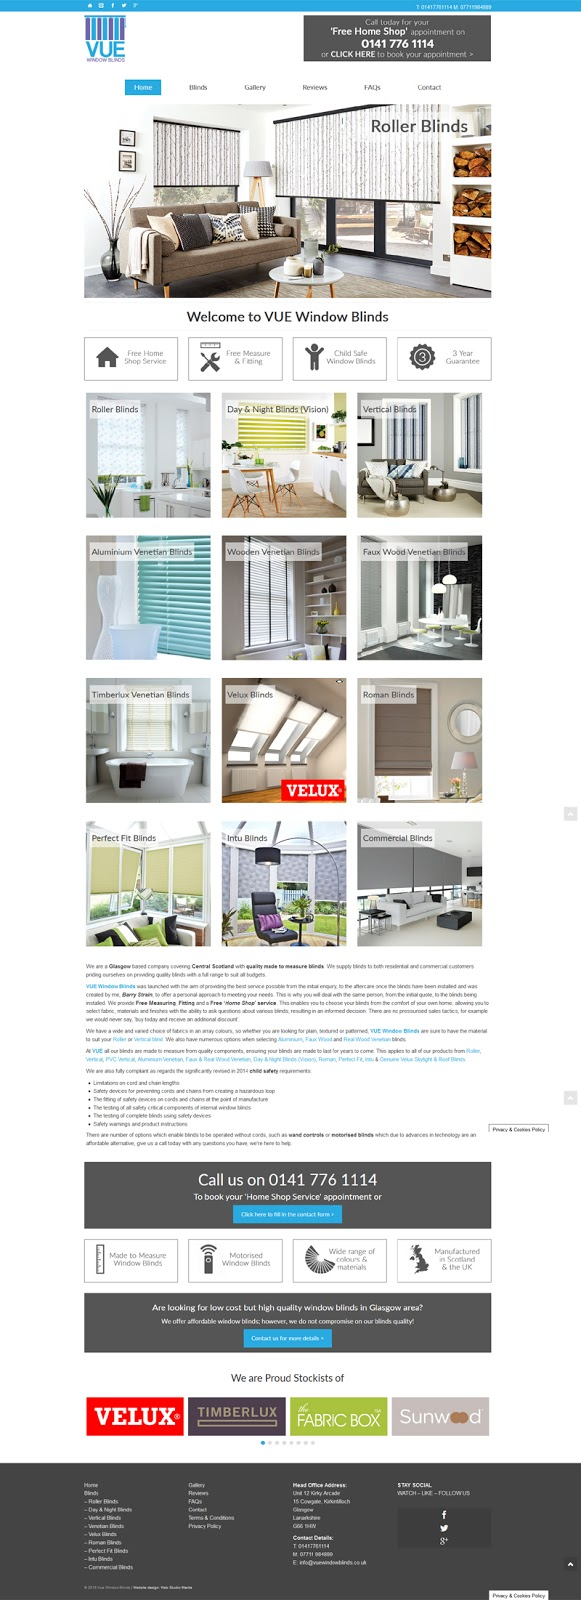 http://www.vuewindowblinds.co.uk/